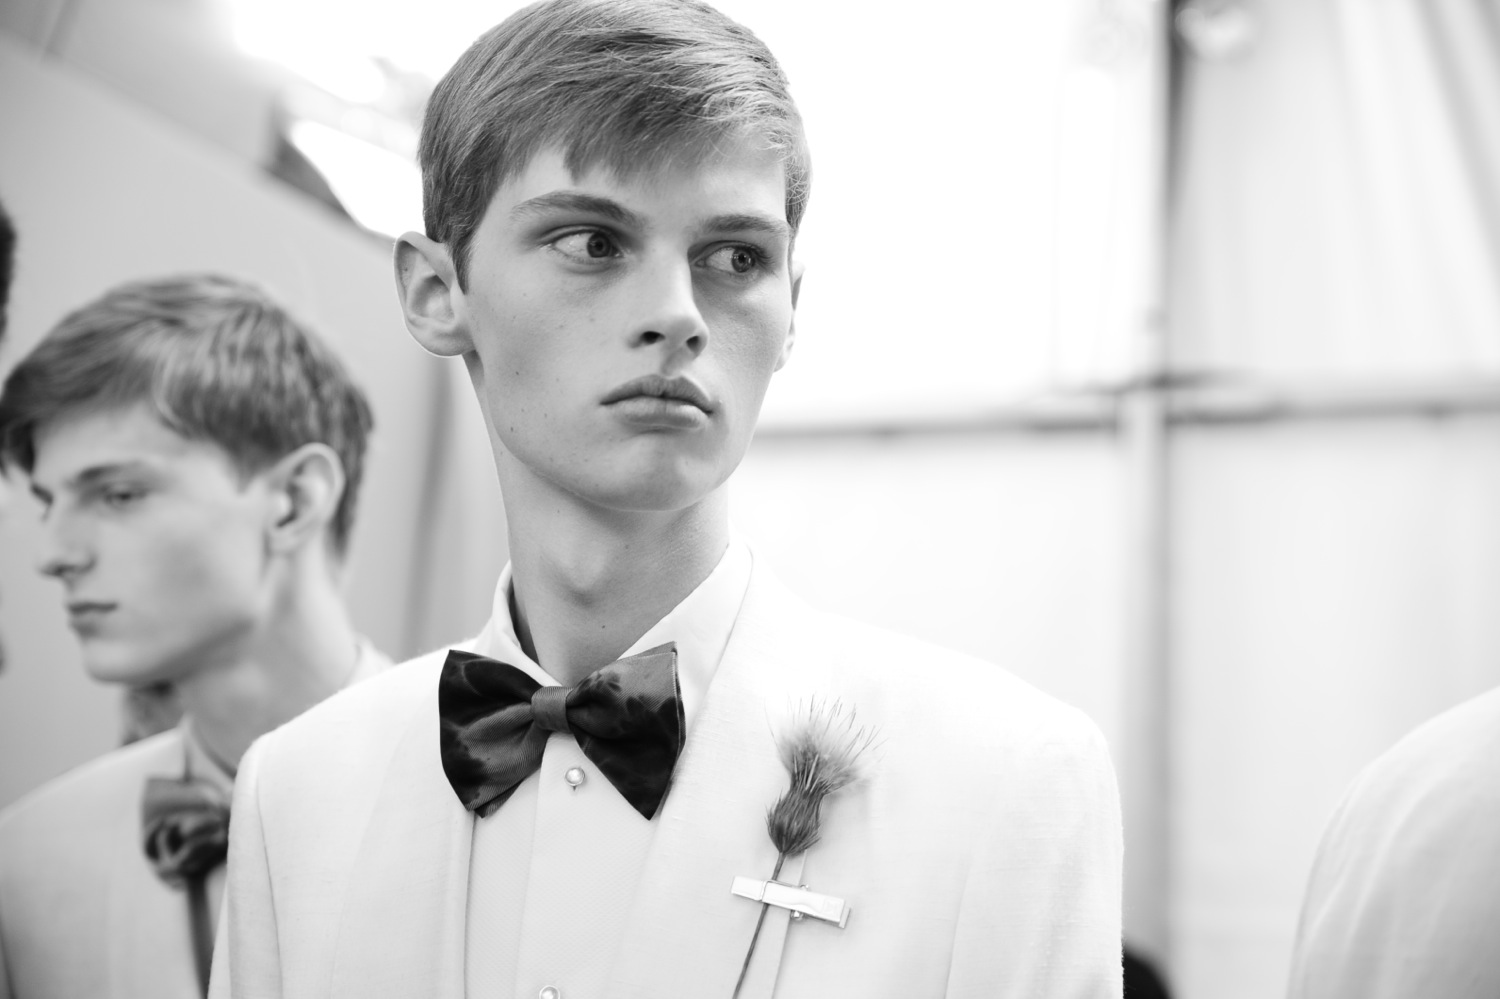 Backstage at the Louis Vuitton Men Spring Summer 2014 Show 19